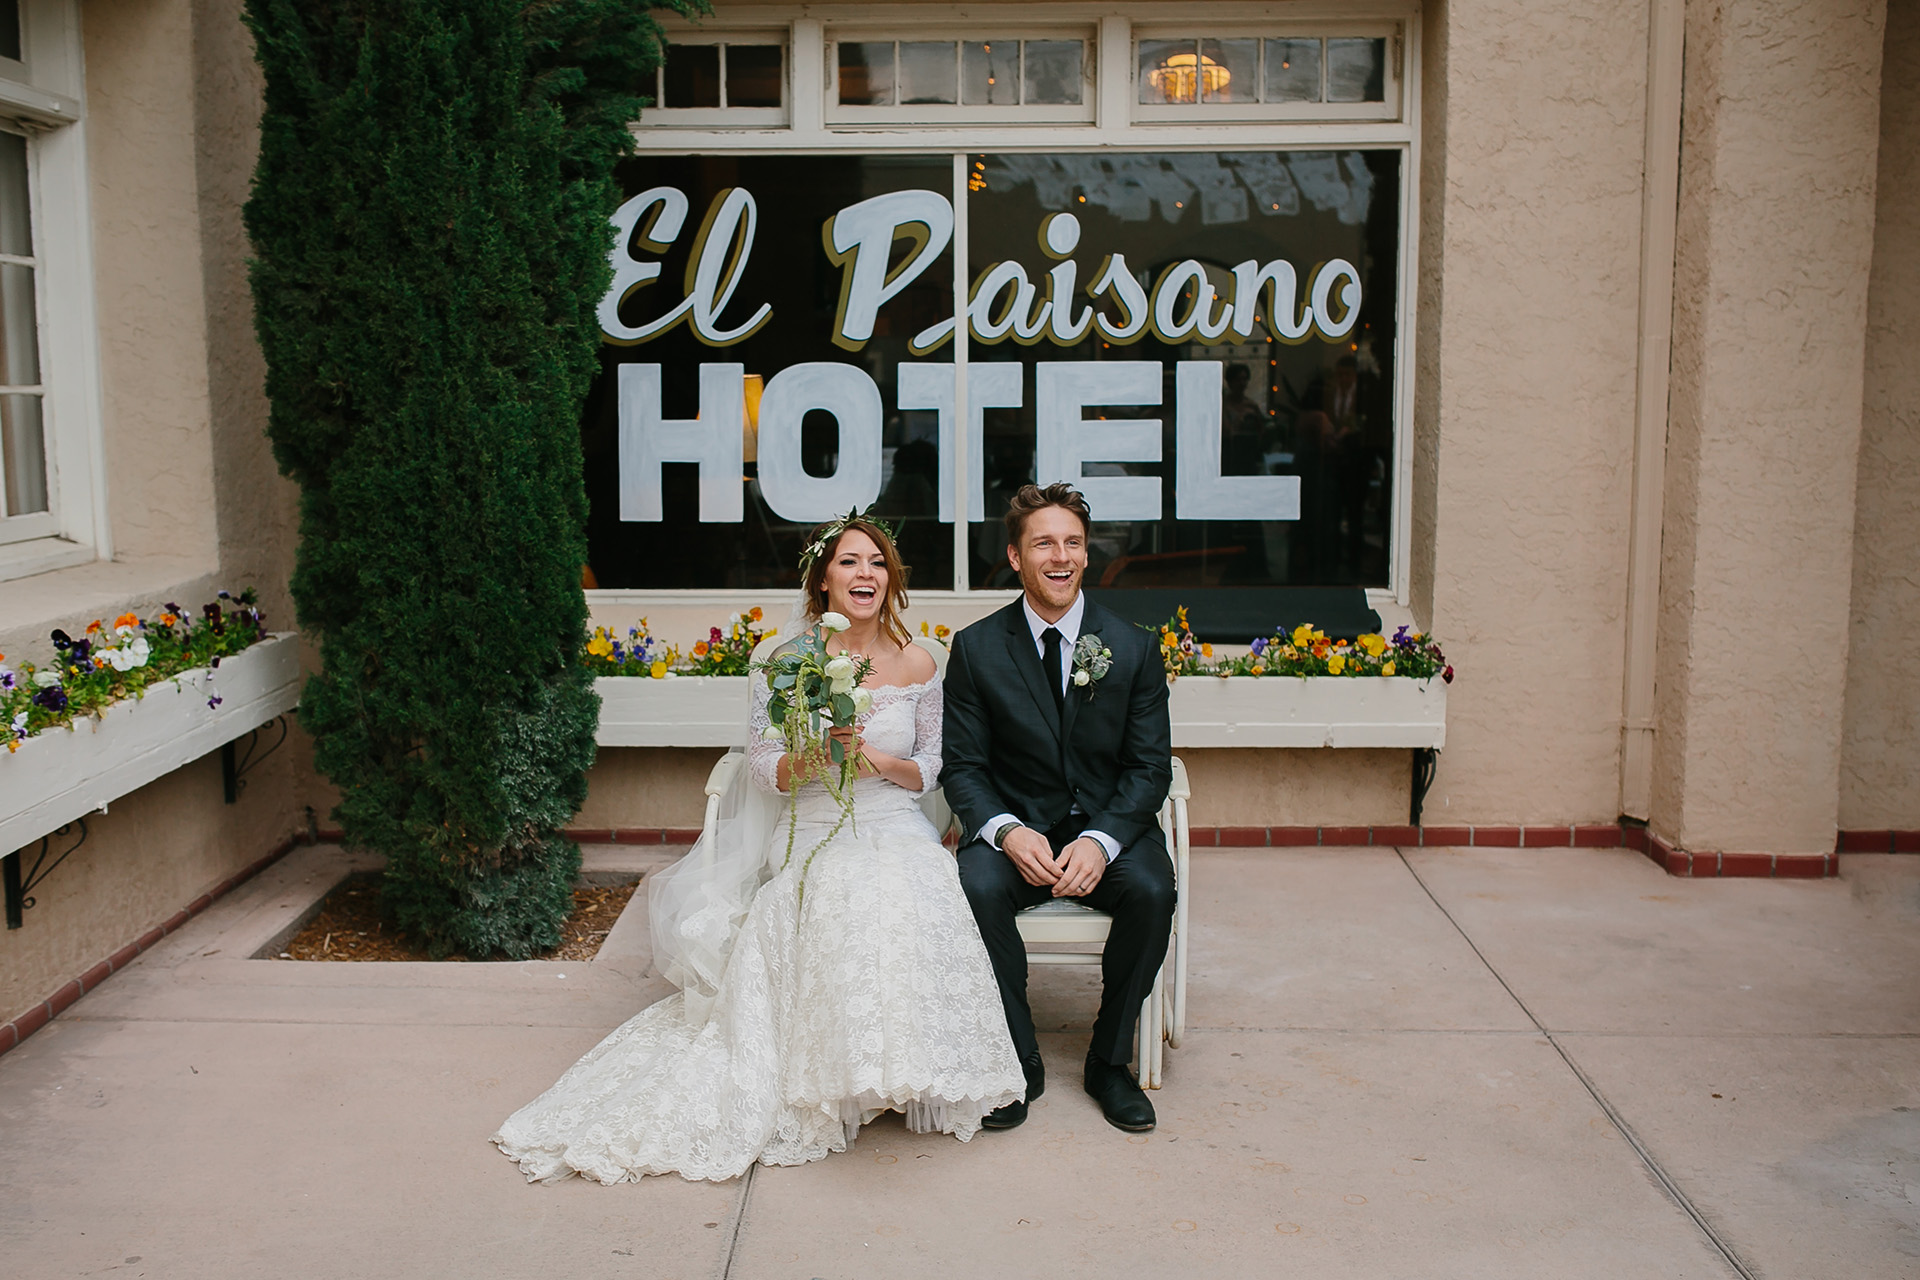 hotel paisano marfa wedding